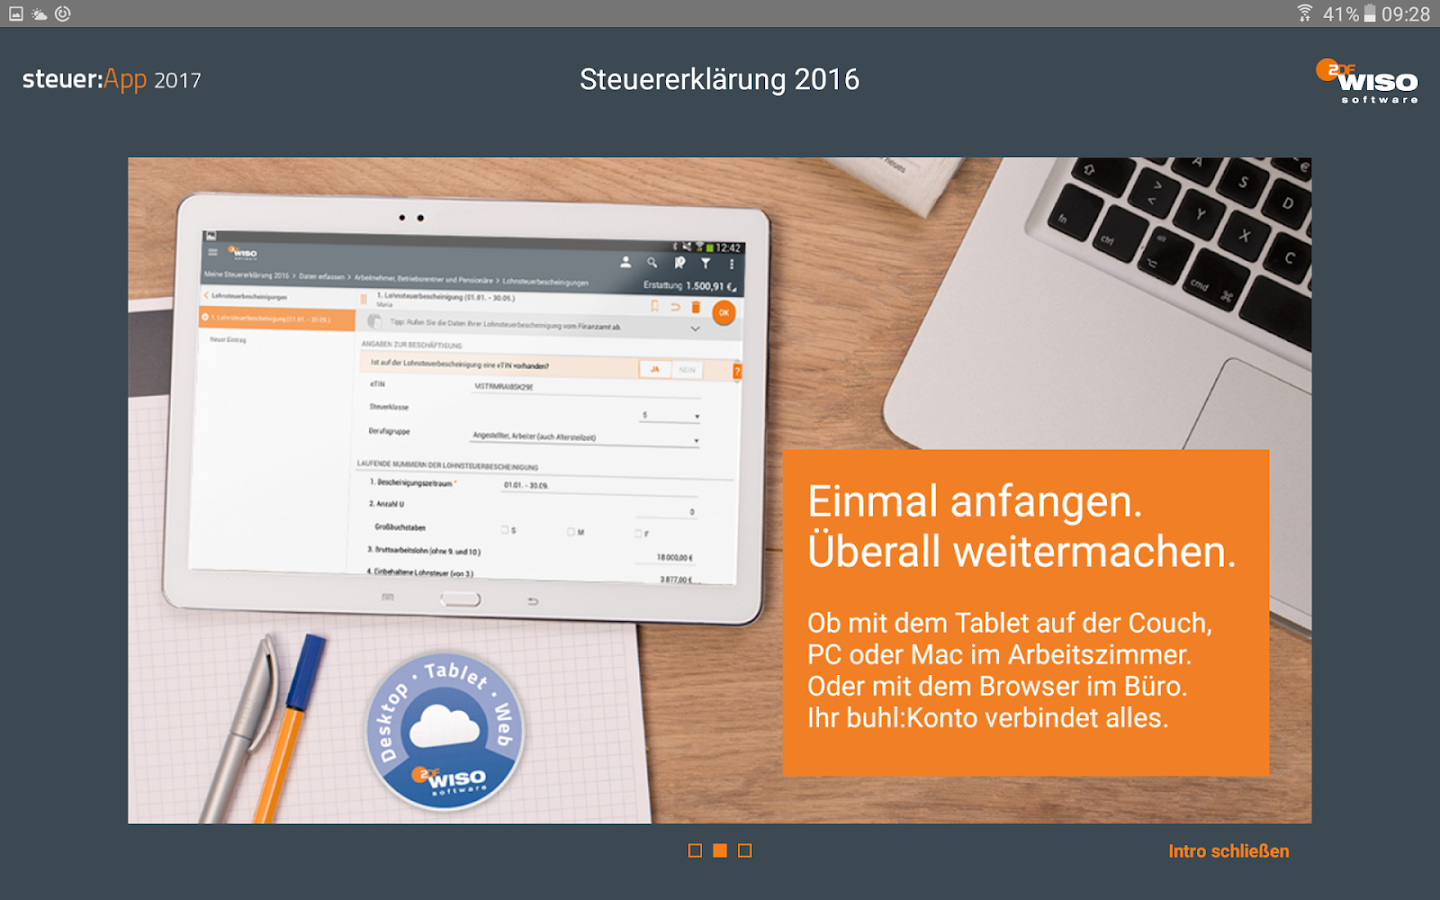 WISO steuer:App 2017 - Android Apps on Google Play